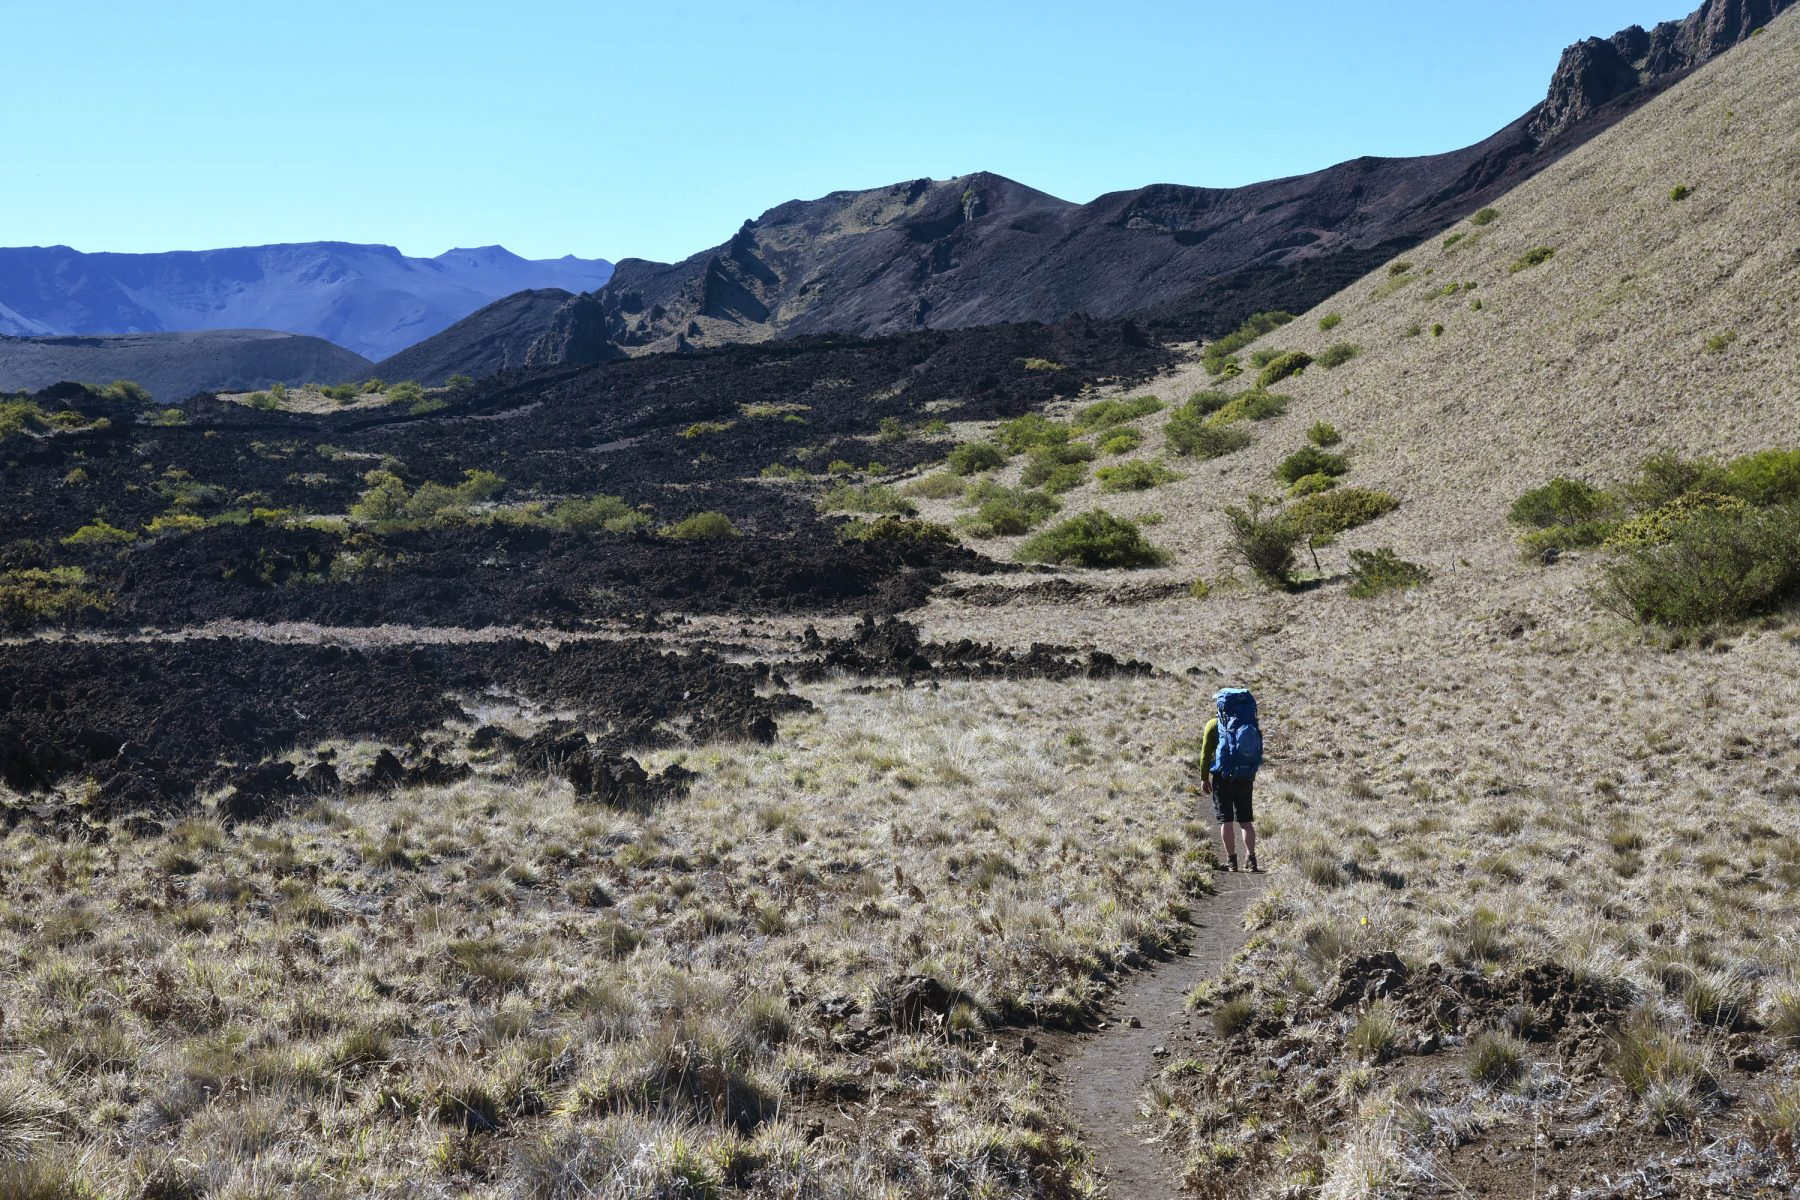 Backpacking the Halemau'u Trail